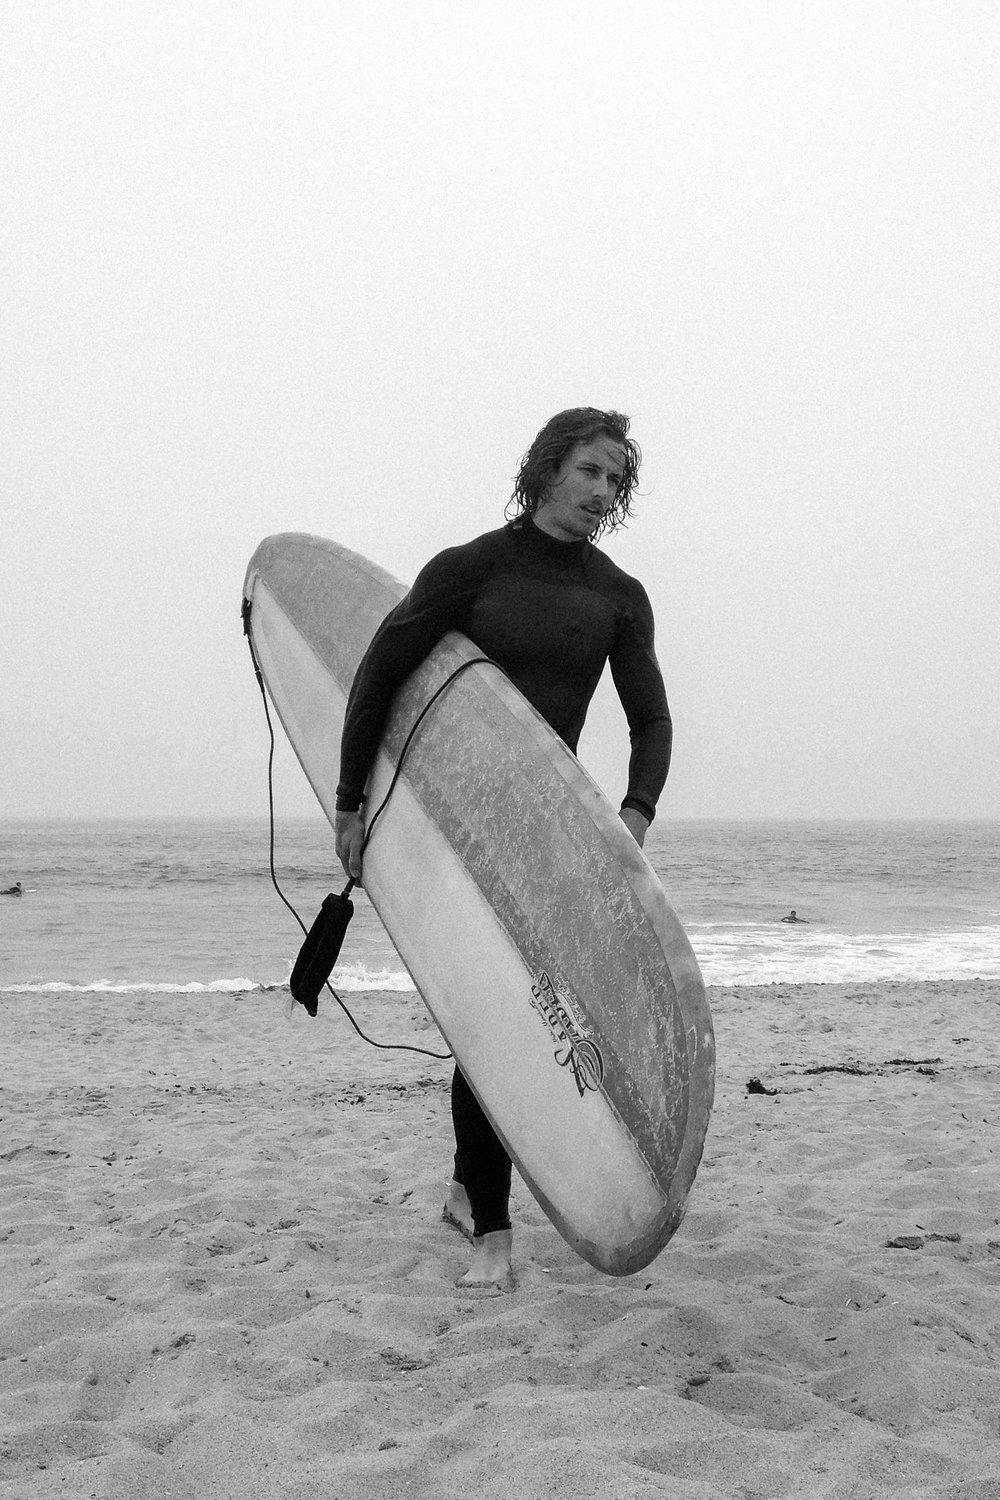 surfer husband, via taylorkristiina.com